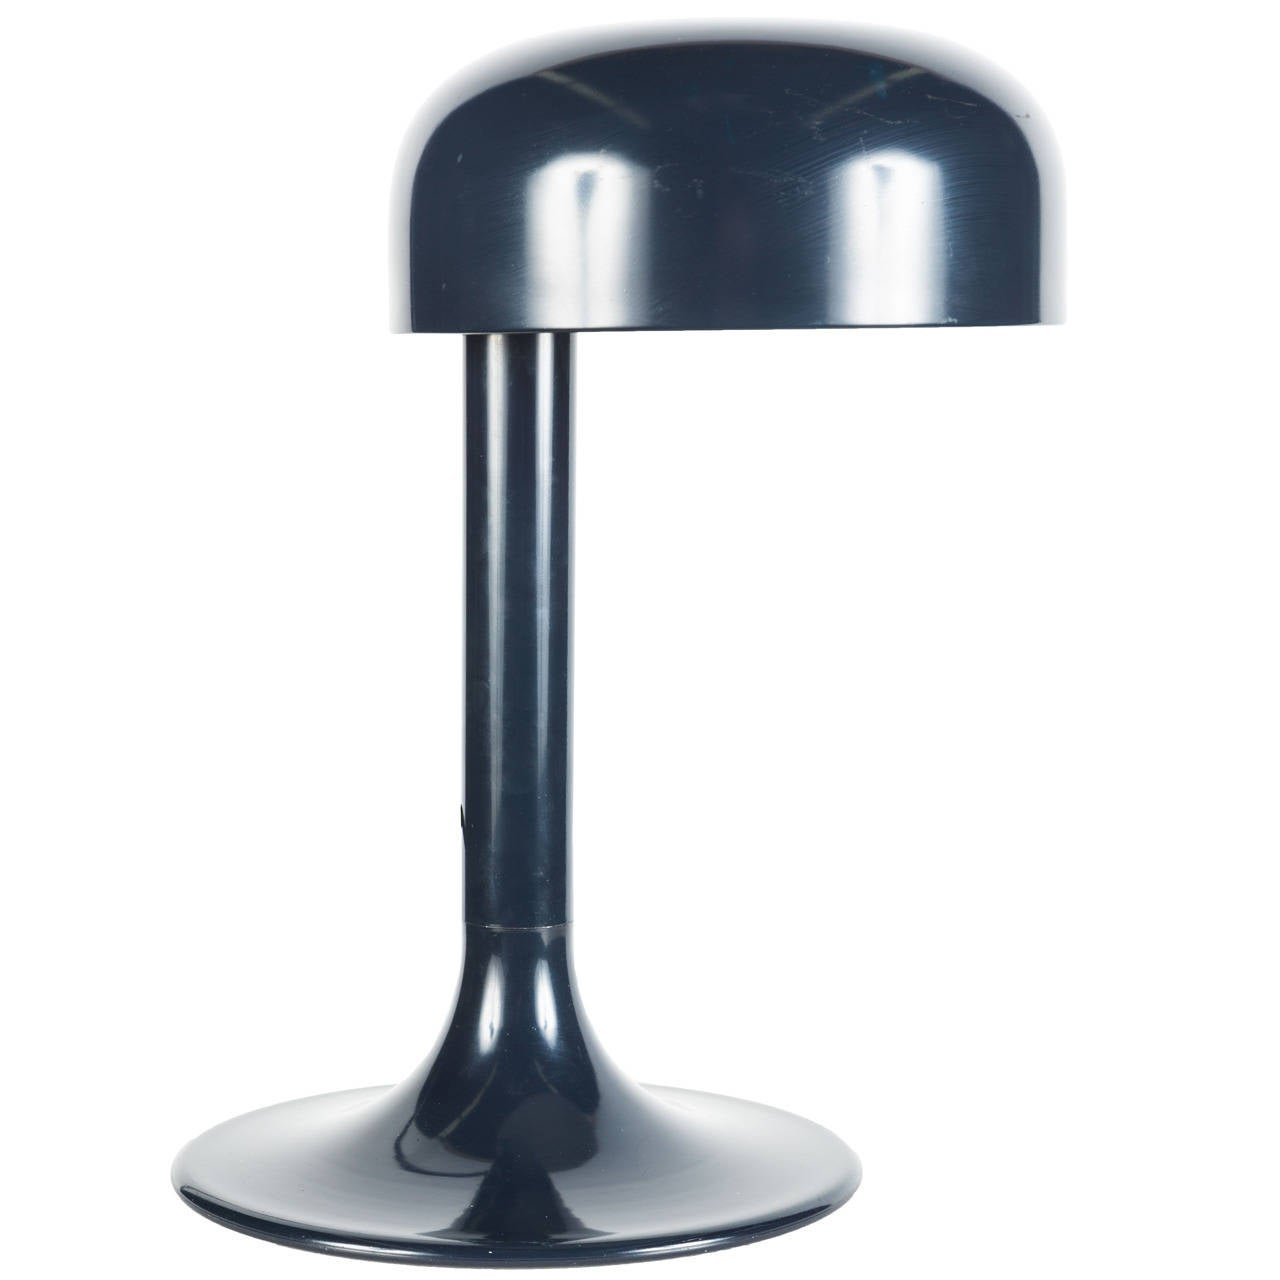 Model Number 3105 Table Lamp by Carlo Viligiardi for Stilnovo